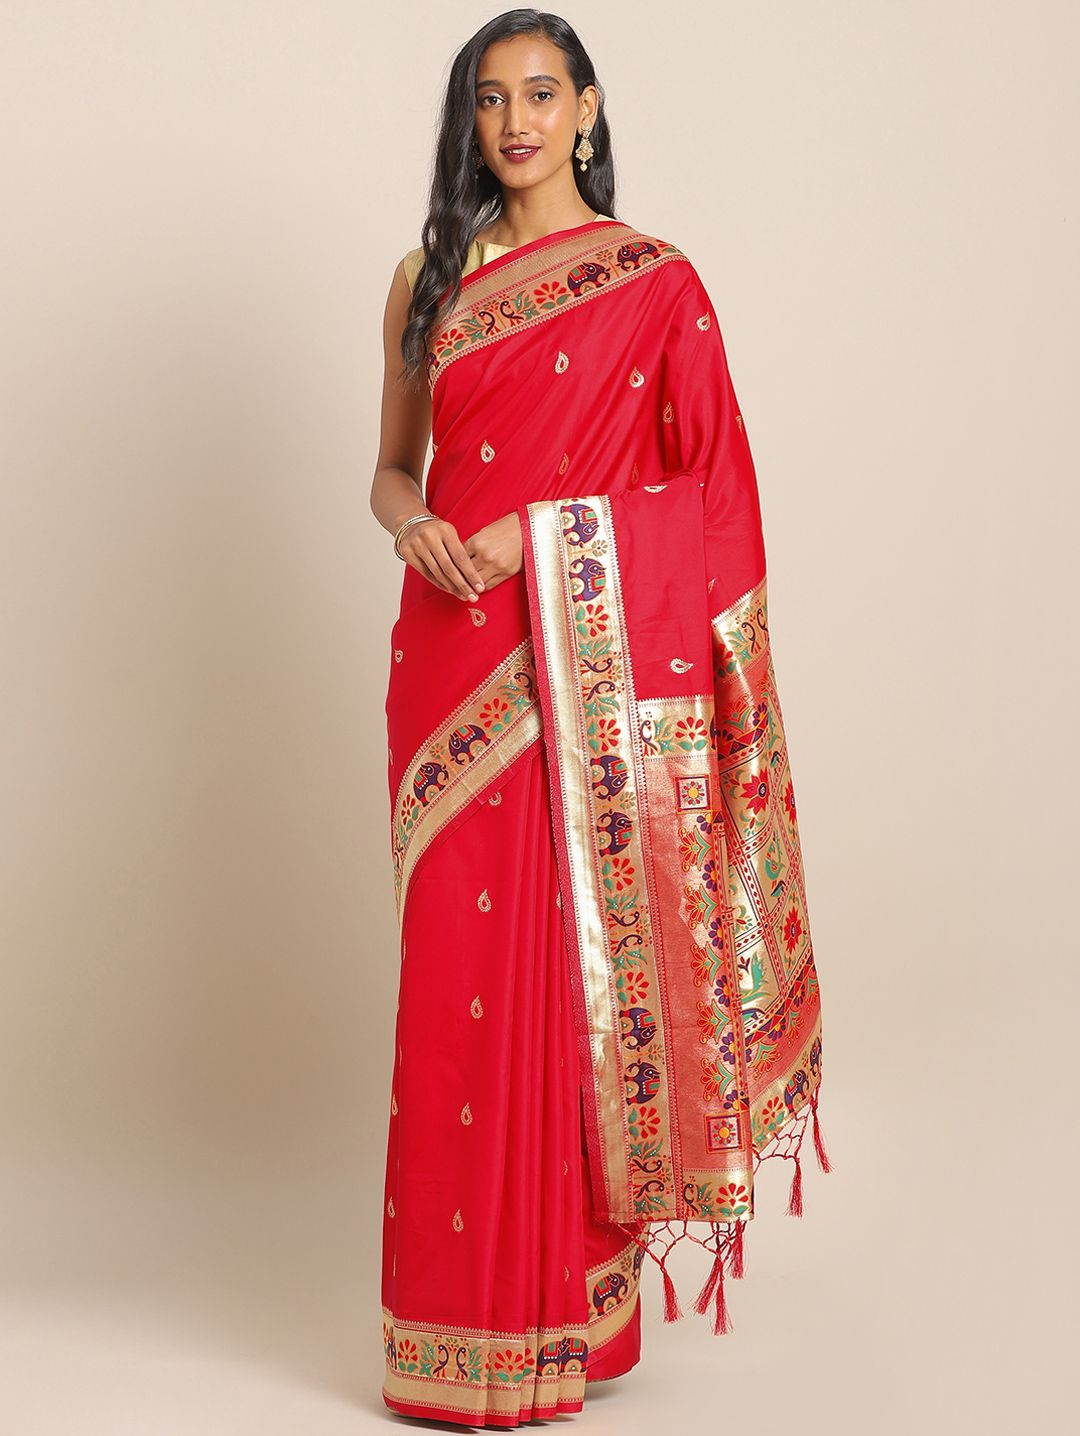 Red Banarasi Silk Traditional Woven Paithani Saree with Peacock and Elephant Motifs